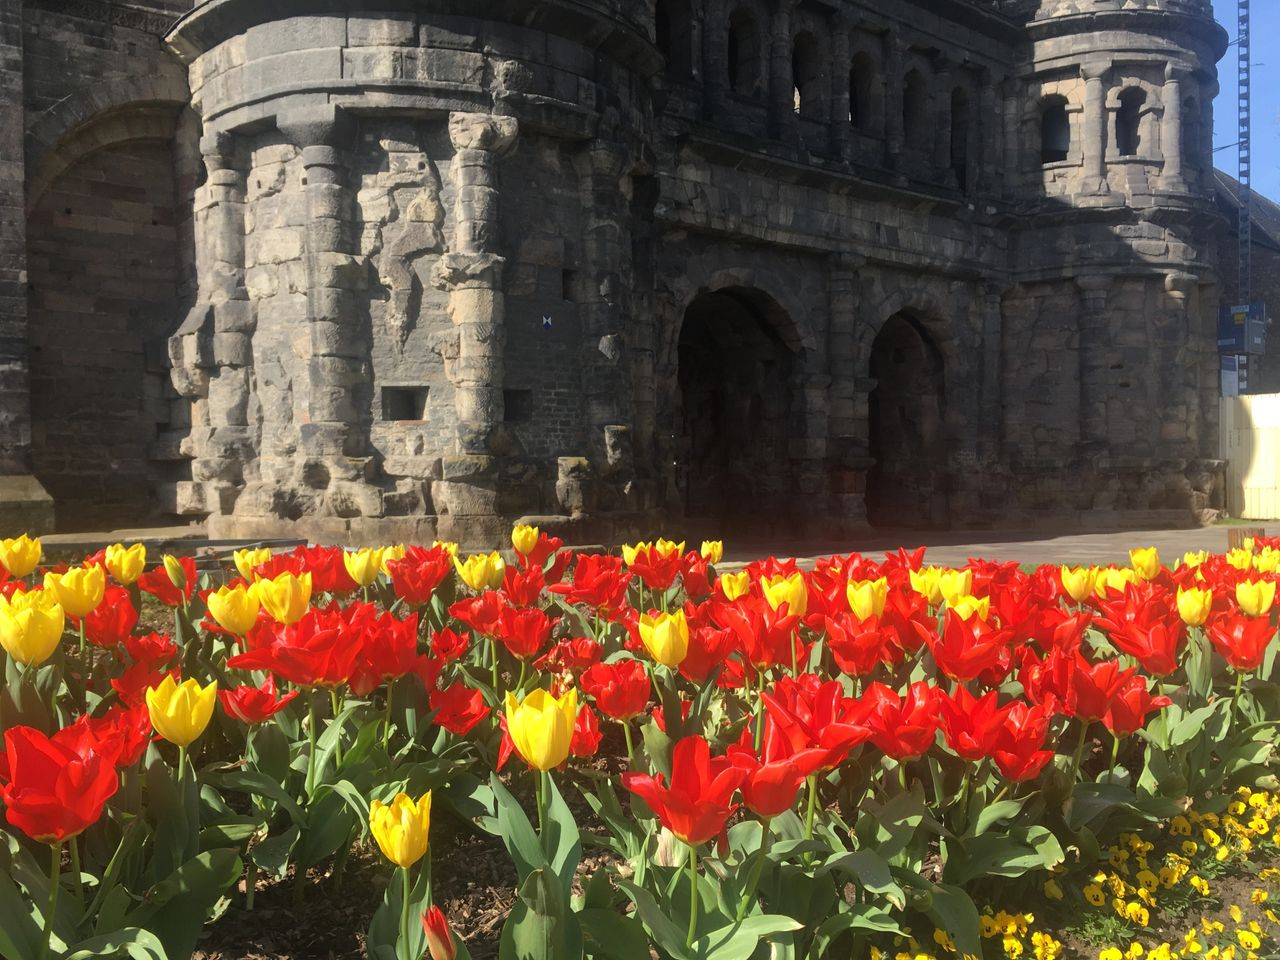 Tulips at the Porta Nigra in Trier, Germany